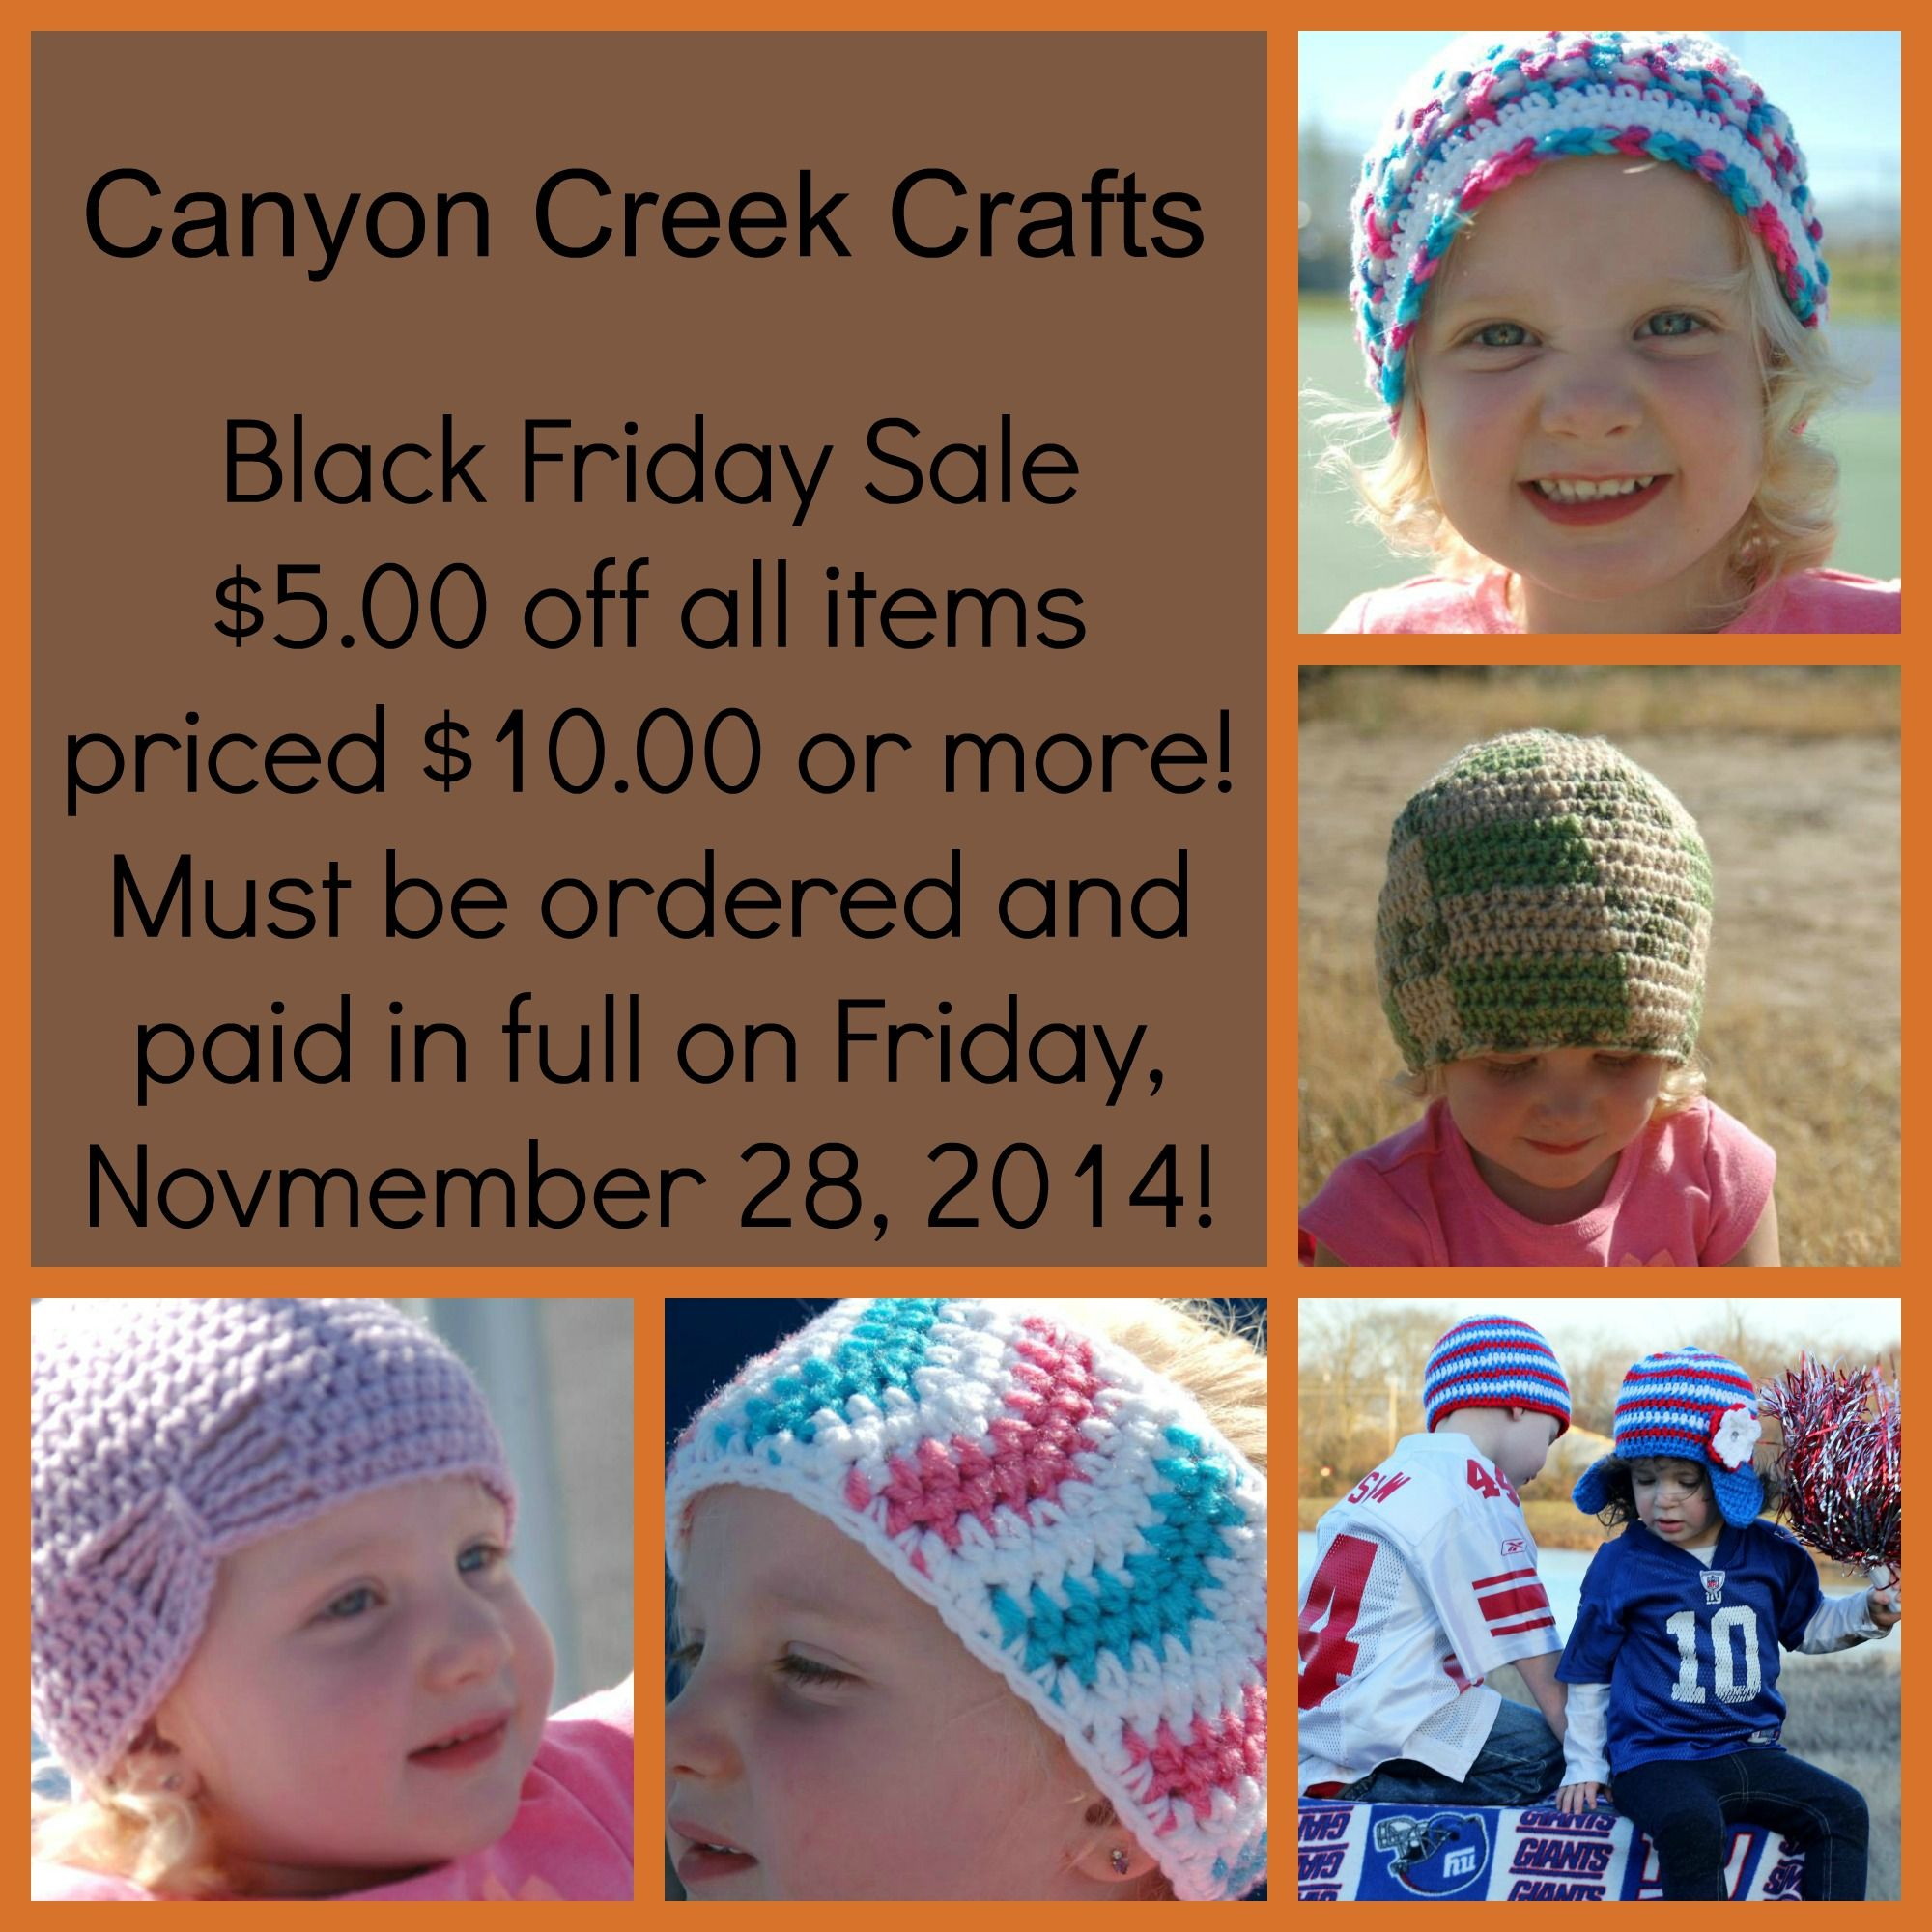 https://www.facebook.com/canyoncreekcrafts